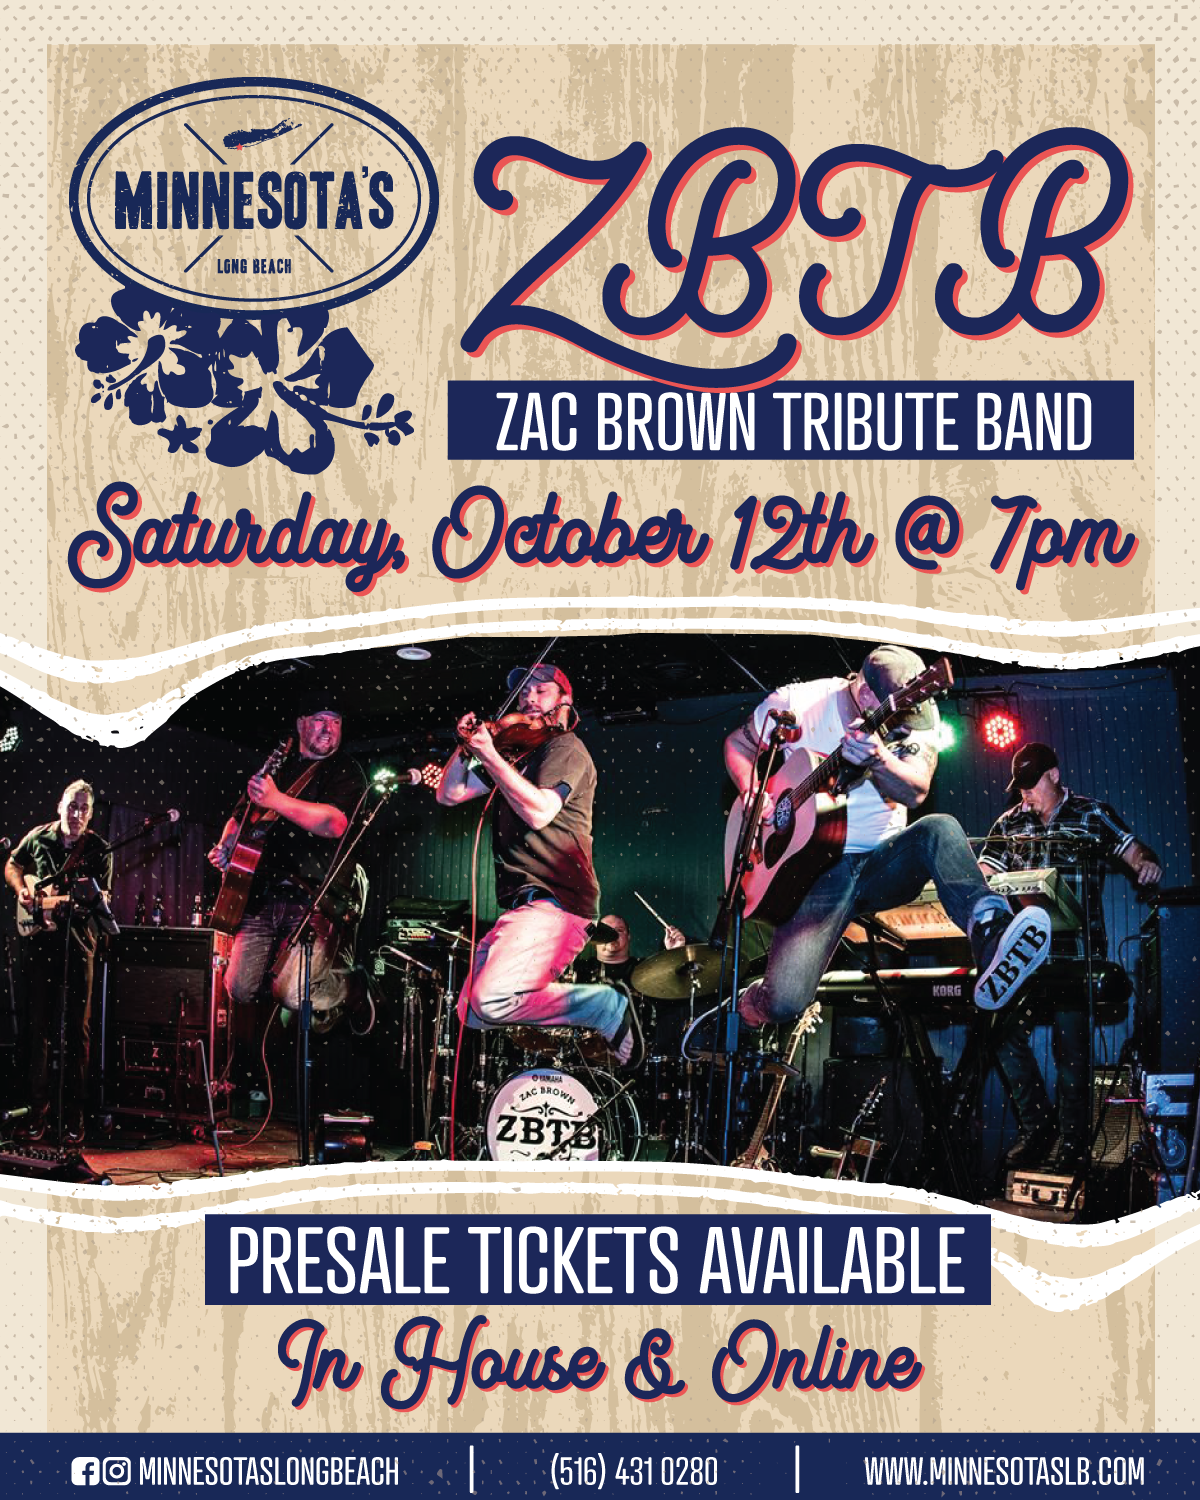 Poster for the Zac Brown Tribute Band at Minnesota's on October 12th at 7 PM